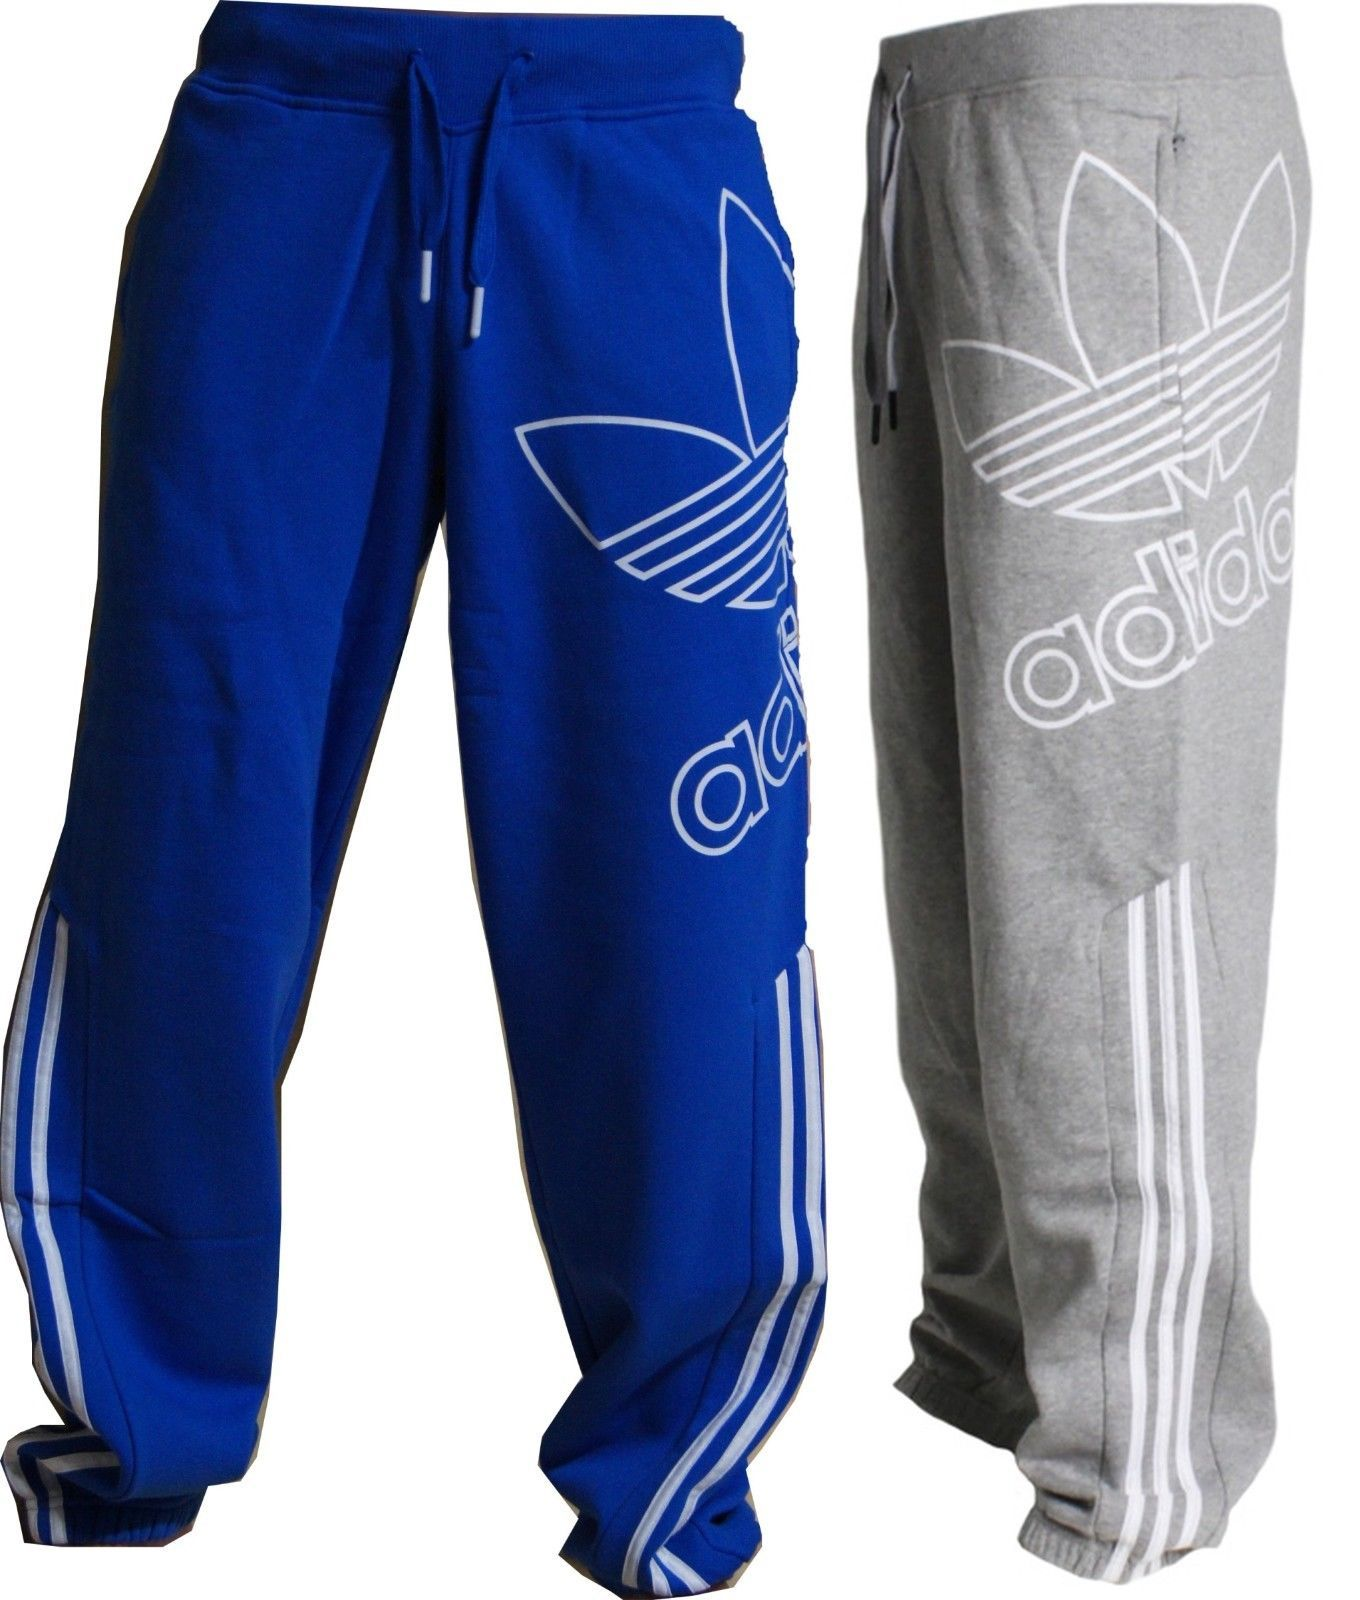 ADIDAS ORIGINALS ADIDAS Samstag Trainingshose Herren Pants